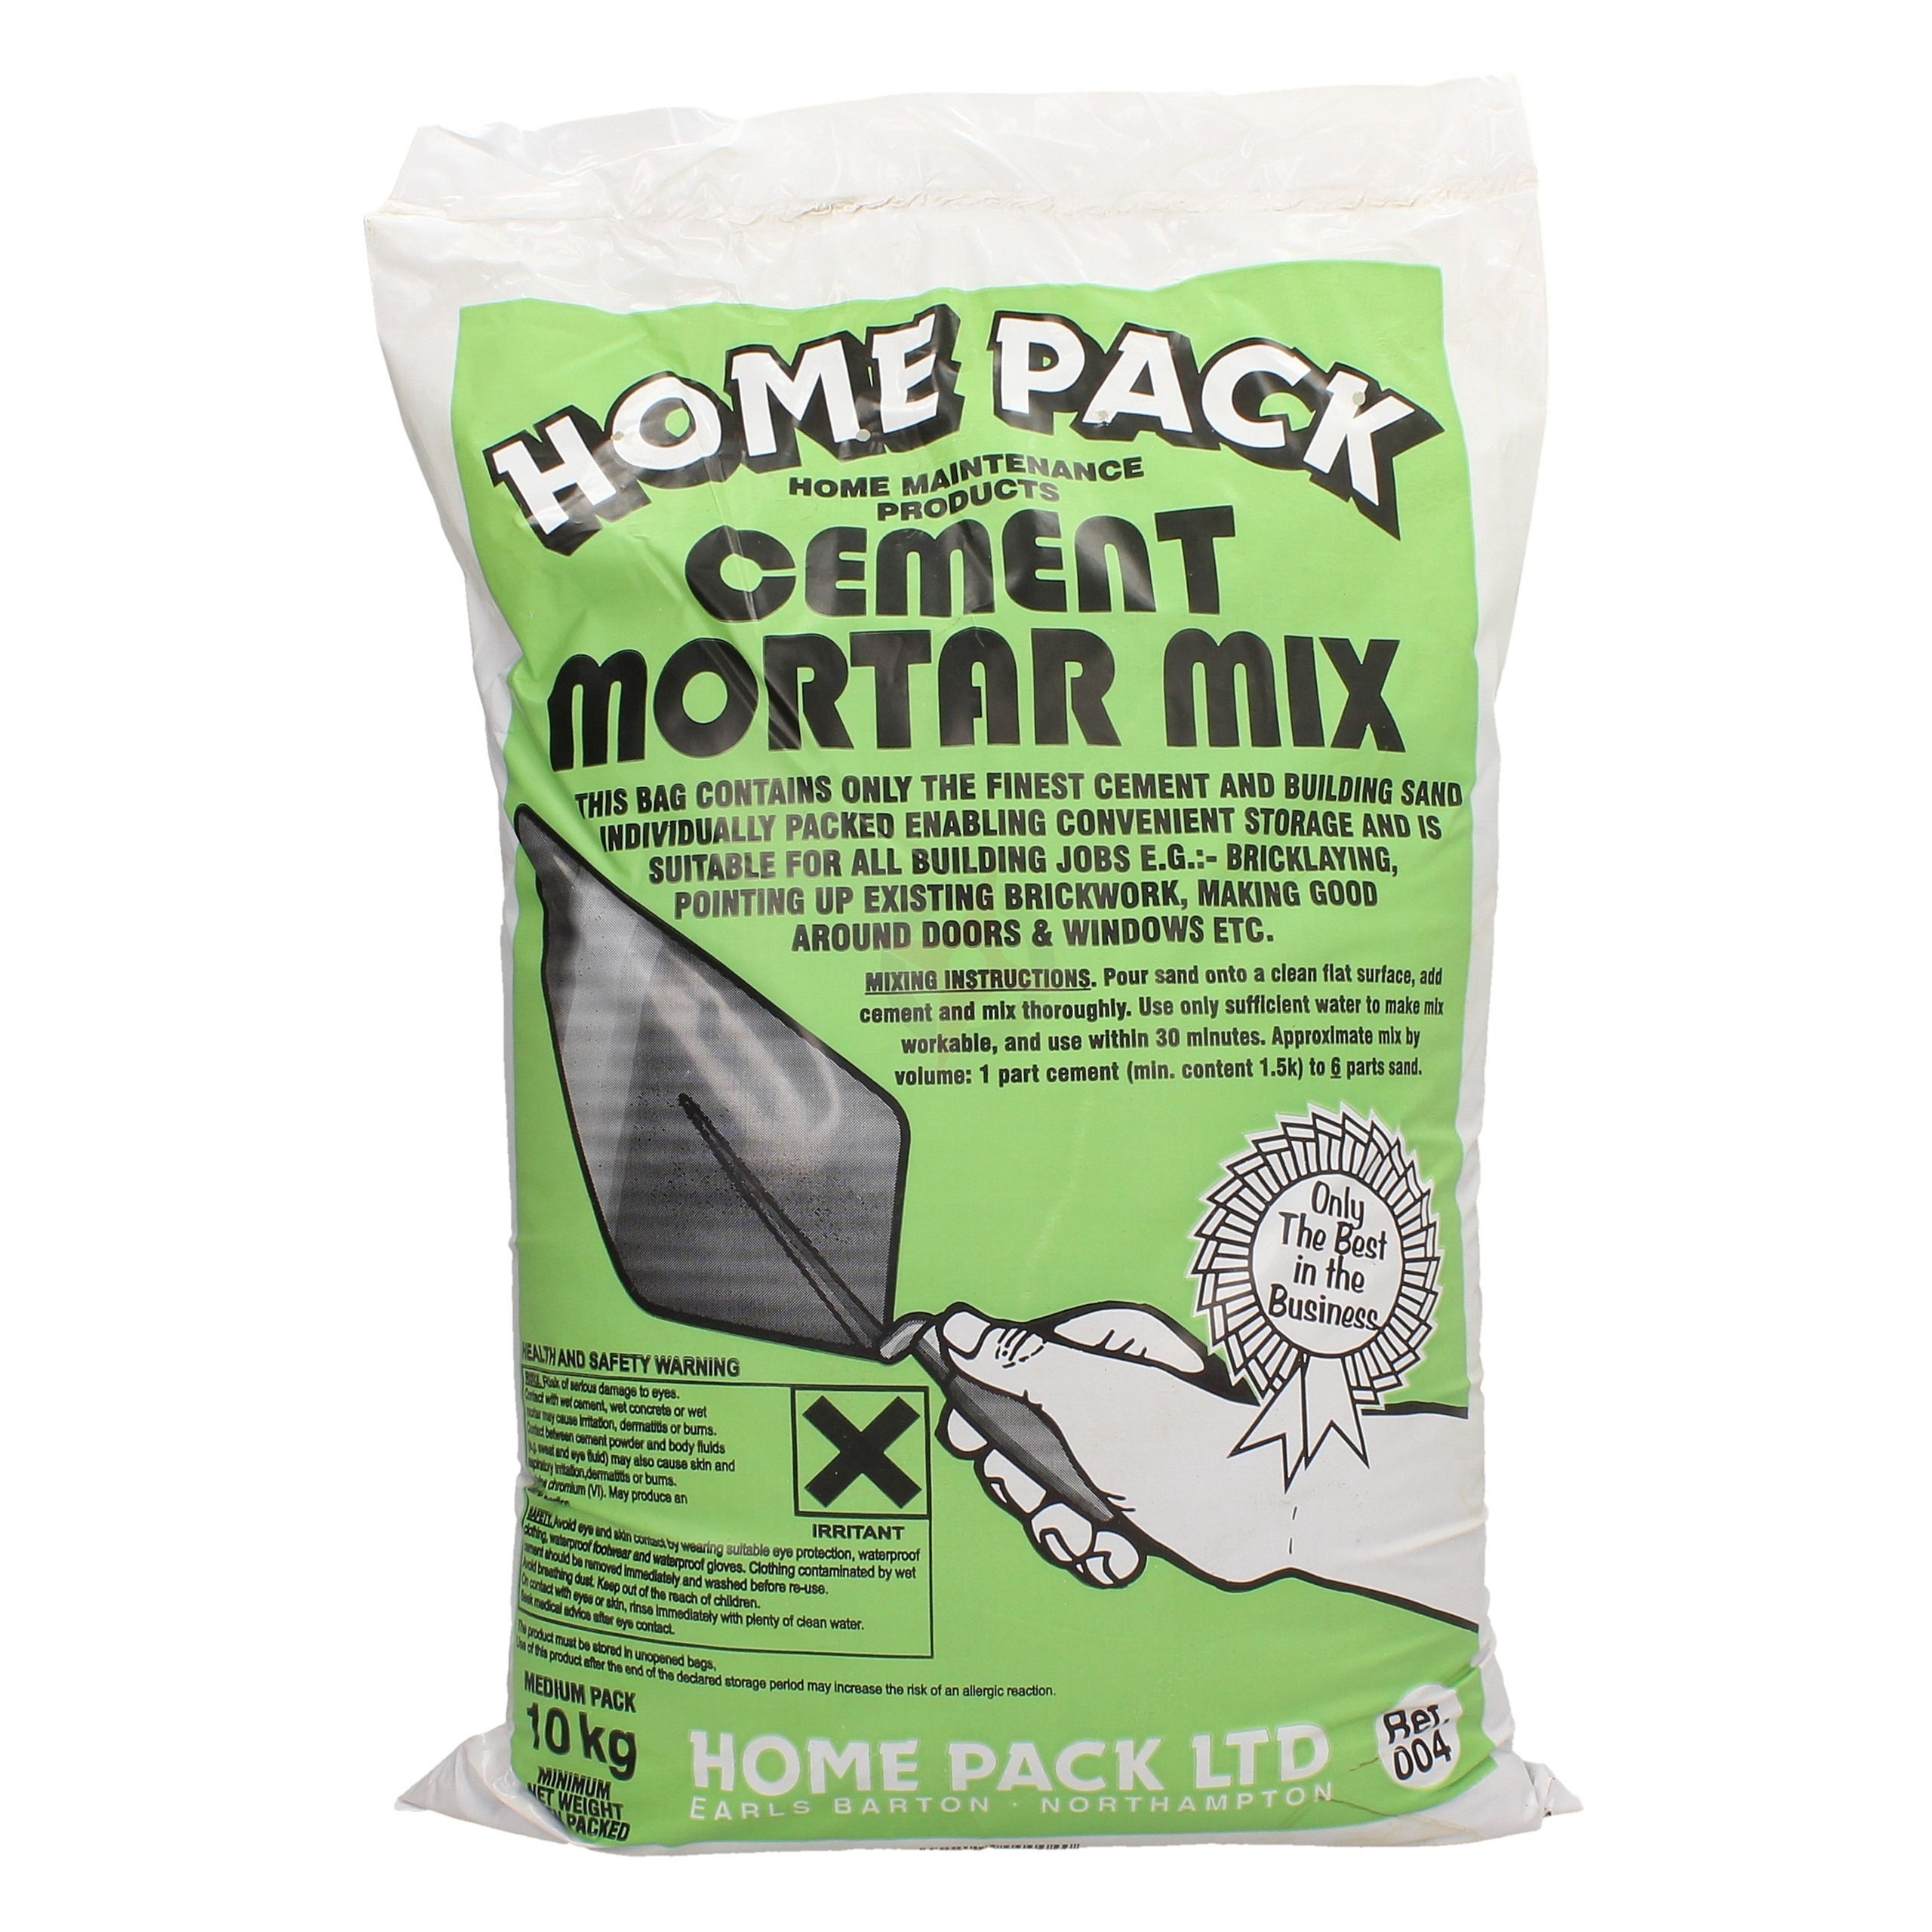 Home Pack 10kg Cement Mortar Mix